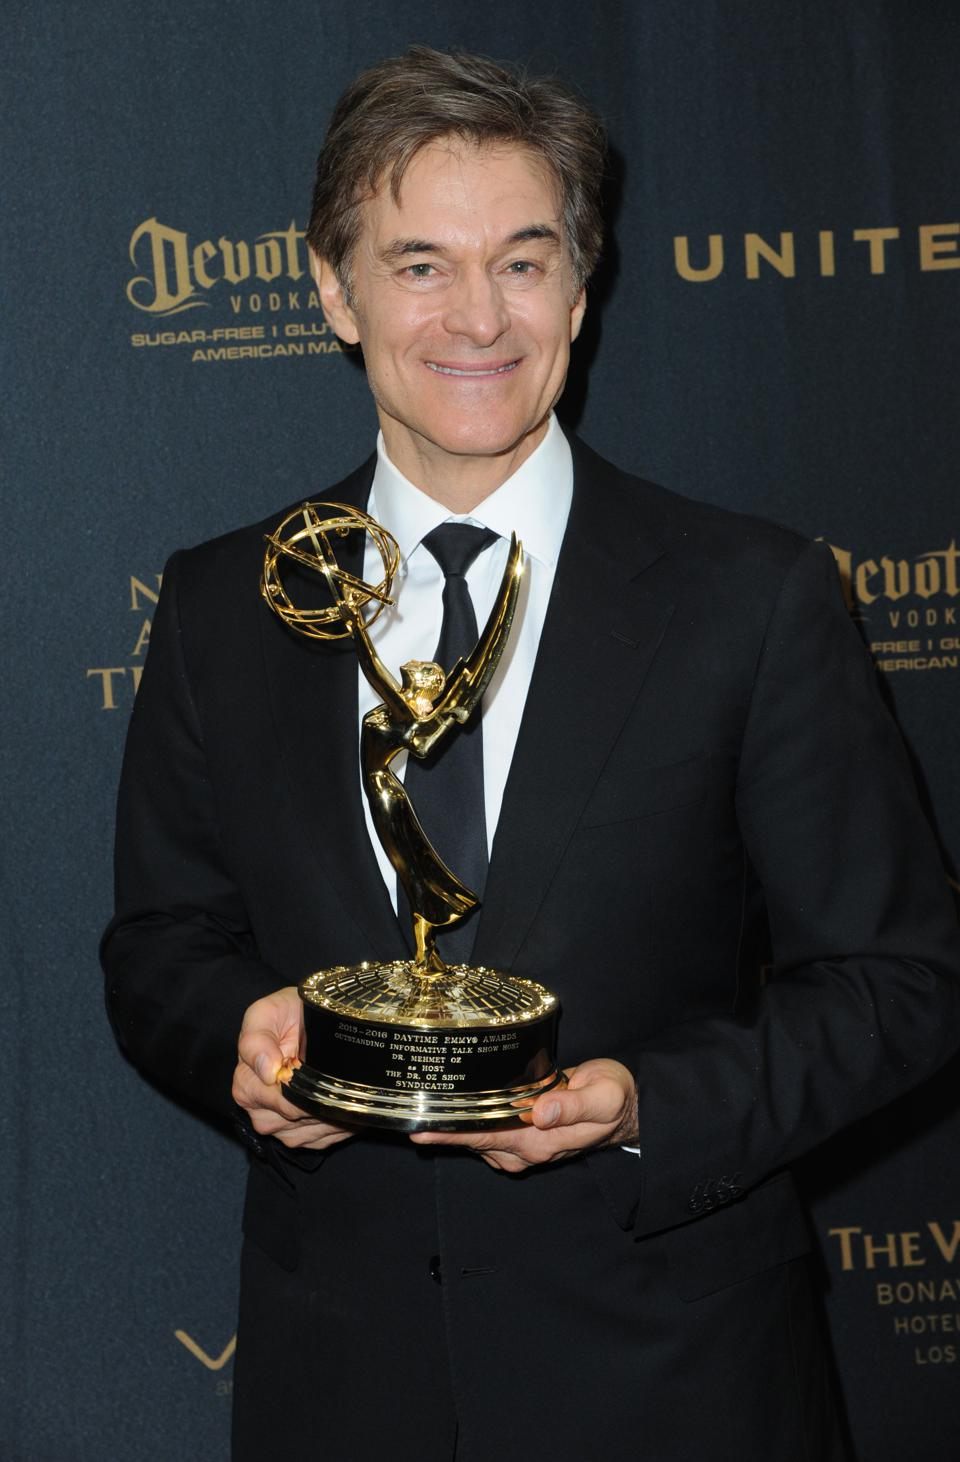 Dr. Oz Makes Millions Even Though He's Been Called A 'Charlatan' (And You Should Follow His Lead)